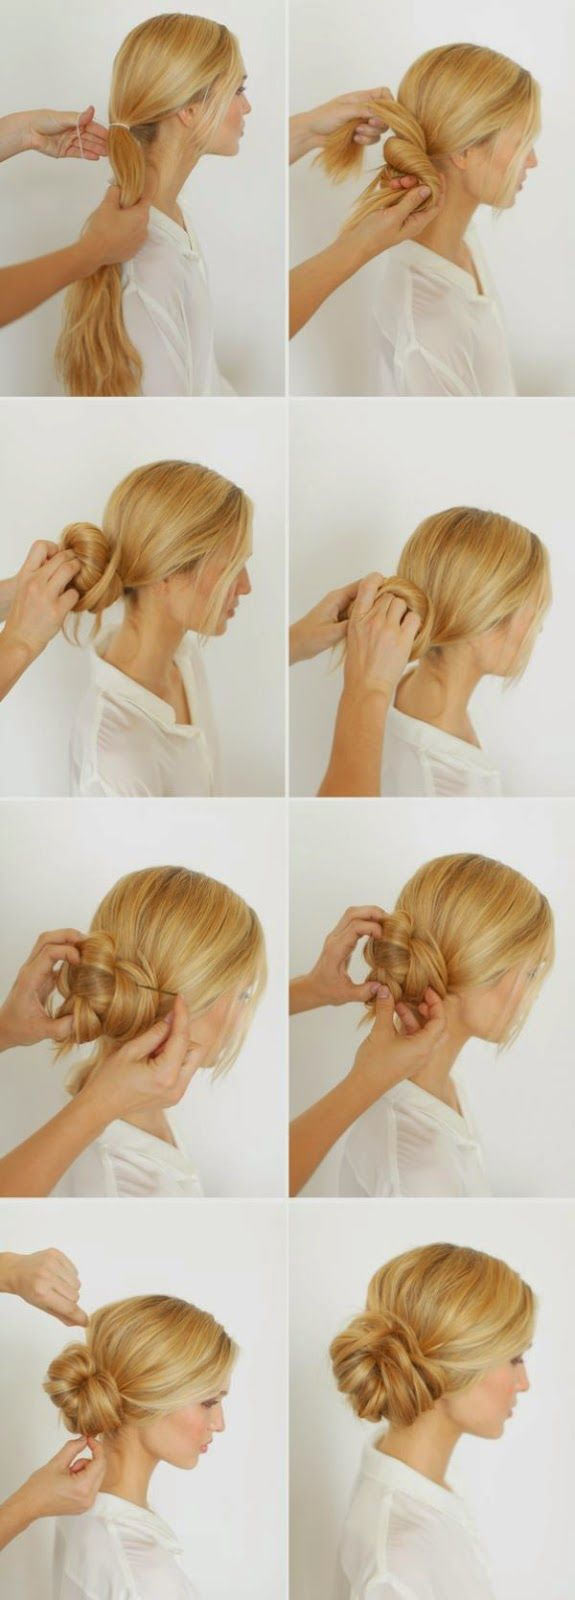 Easy Messy Buns For Long Hair Tutorial - Love and Sayings